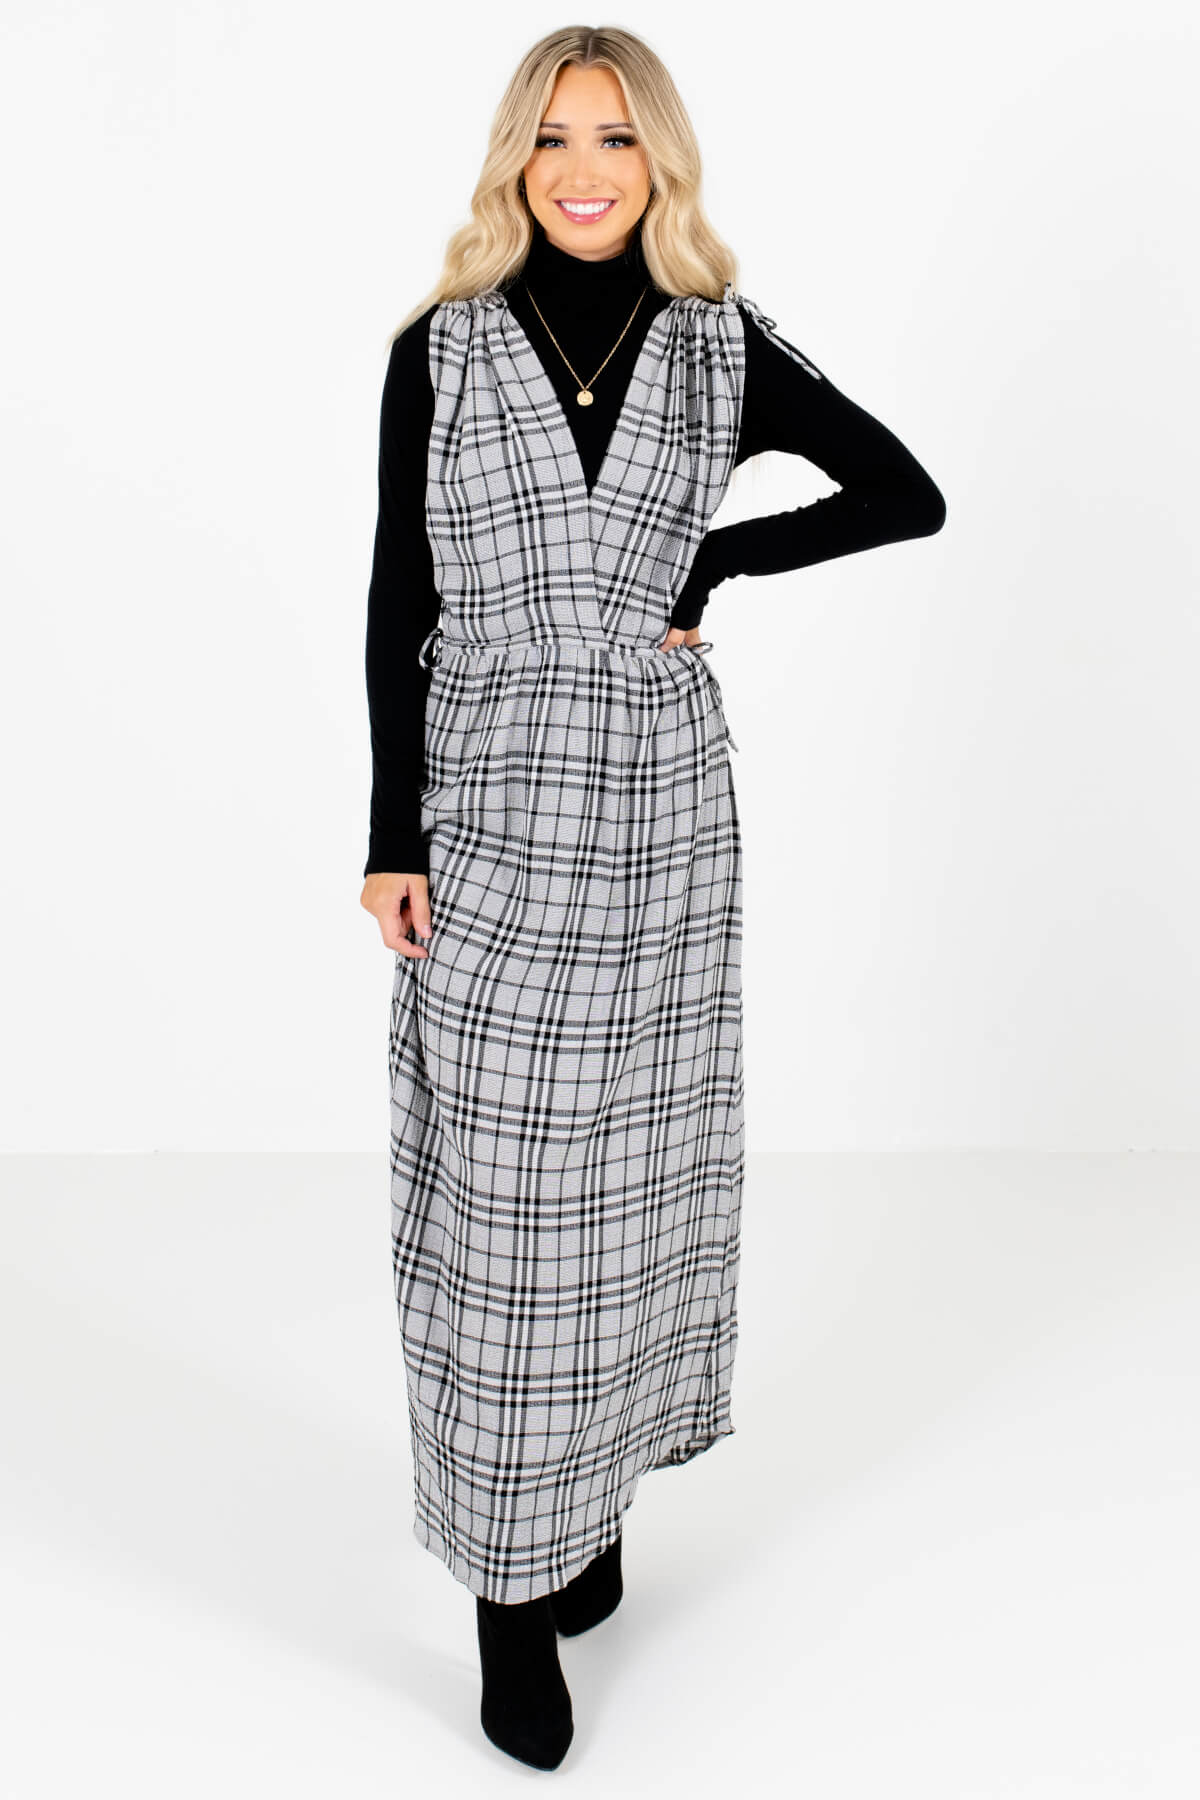 Gray and Black Plaid Patterned Boutique Maxi Dresses for Women